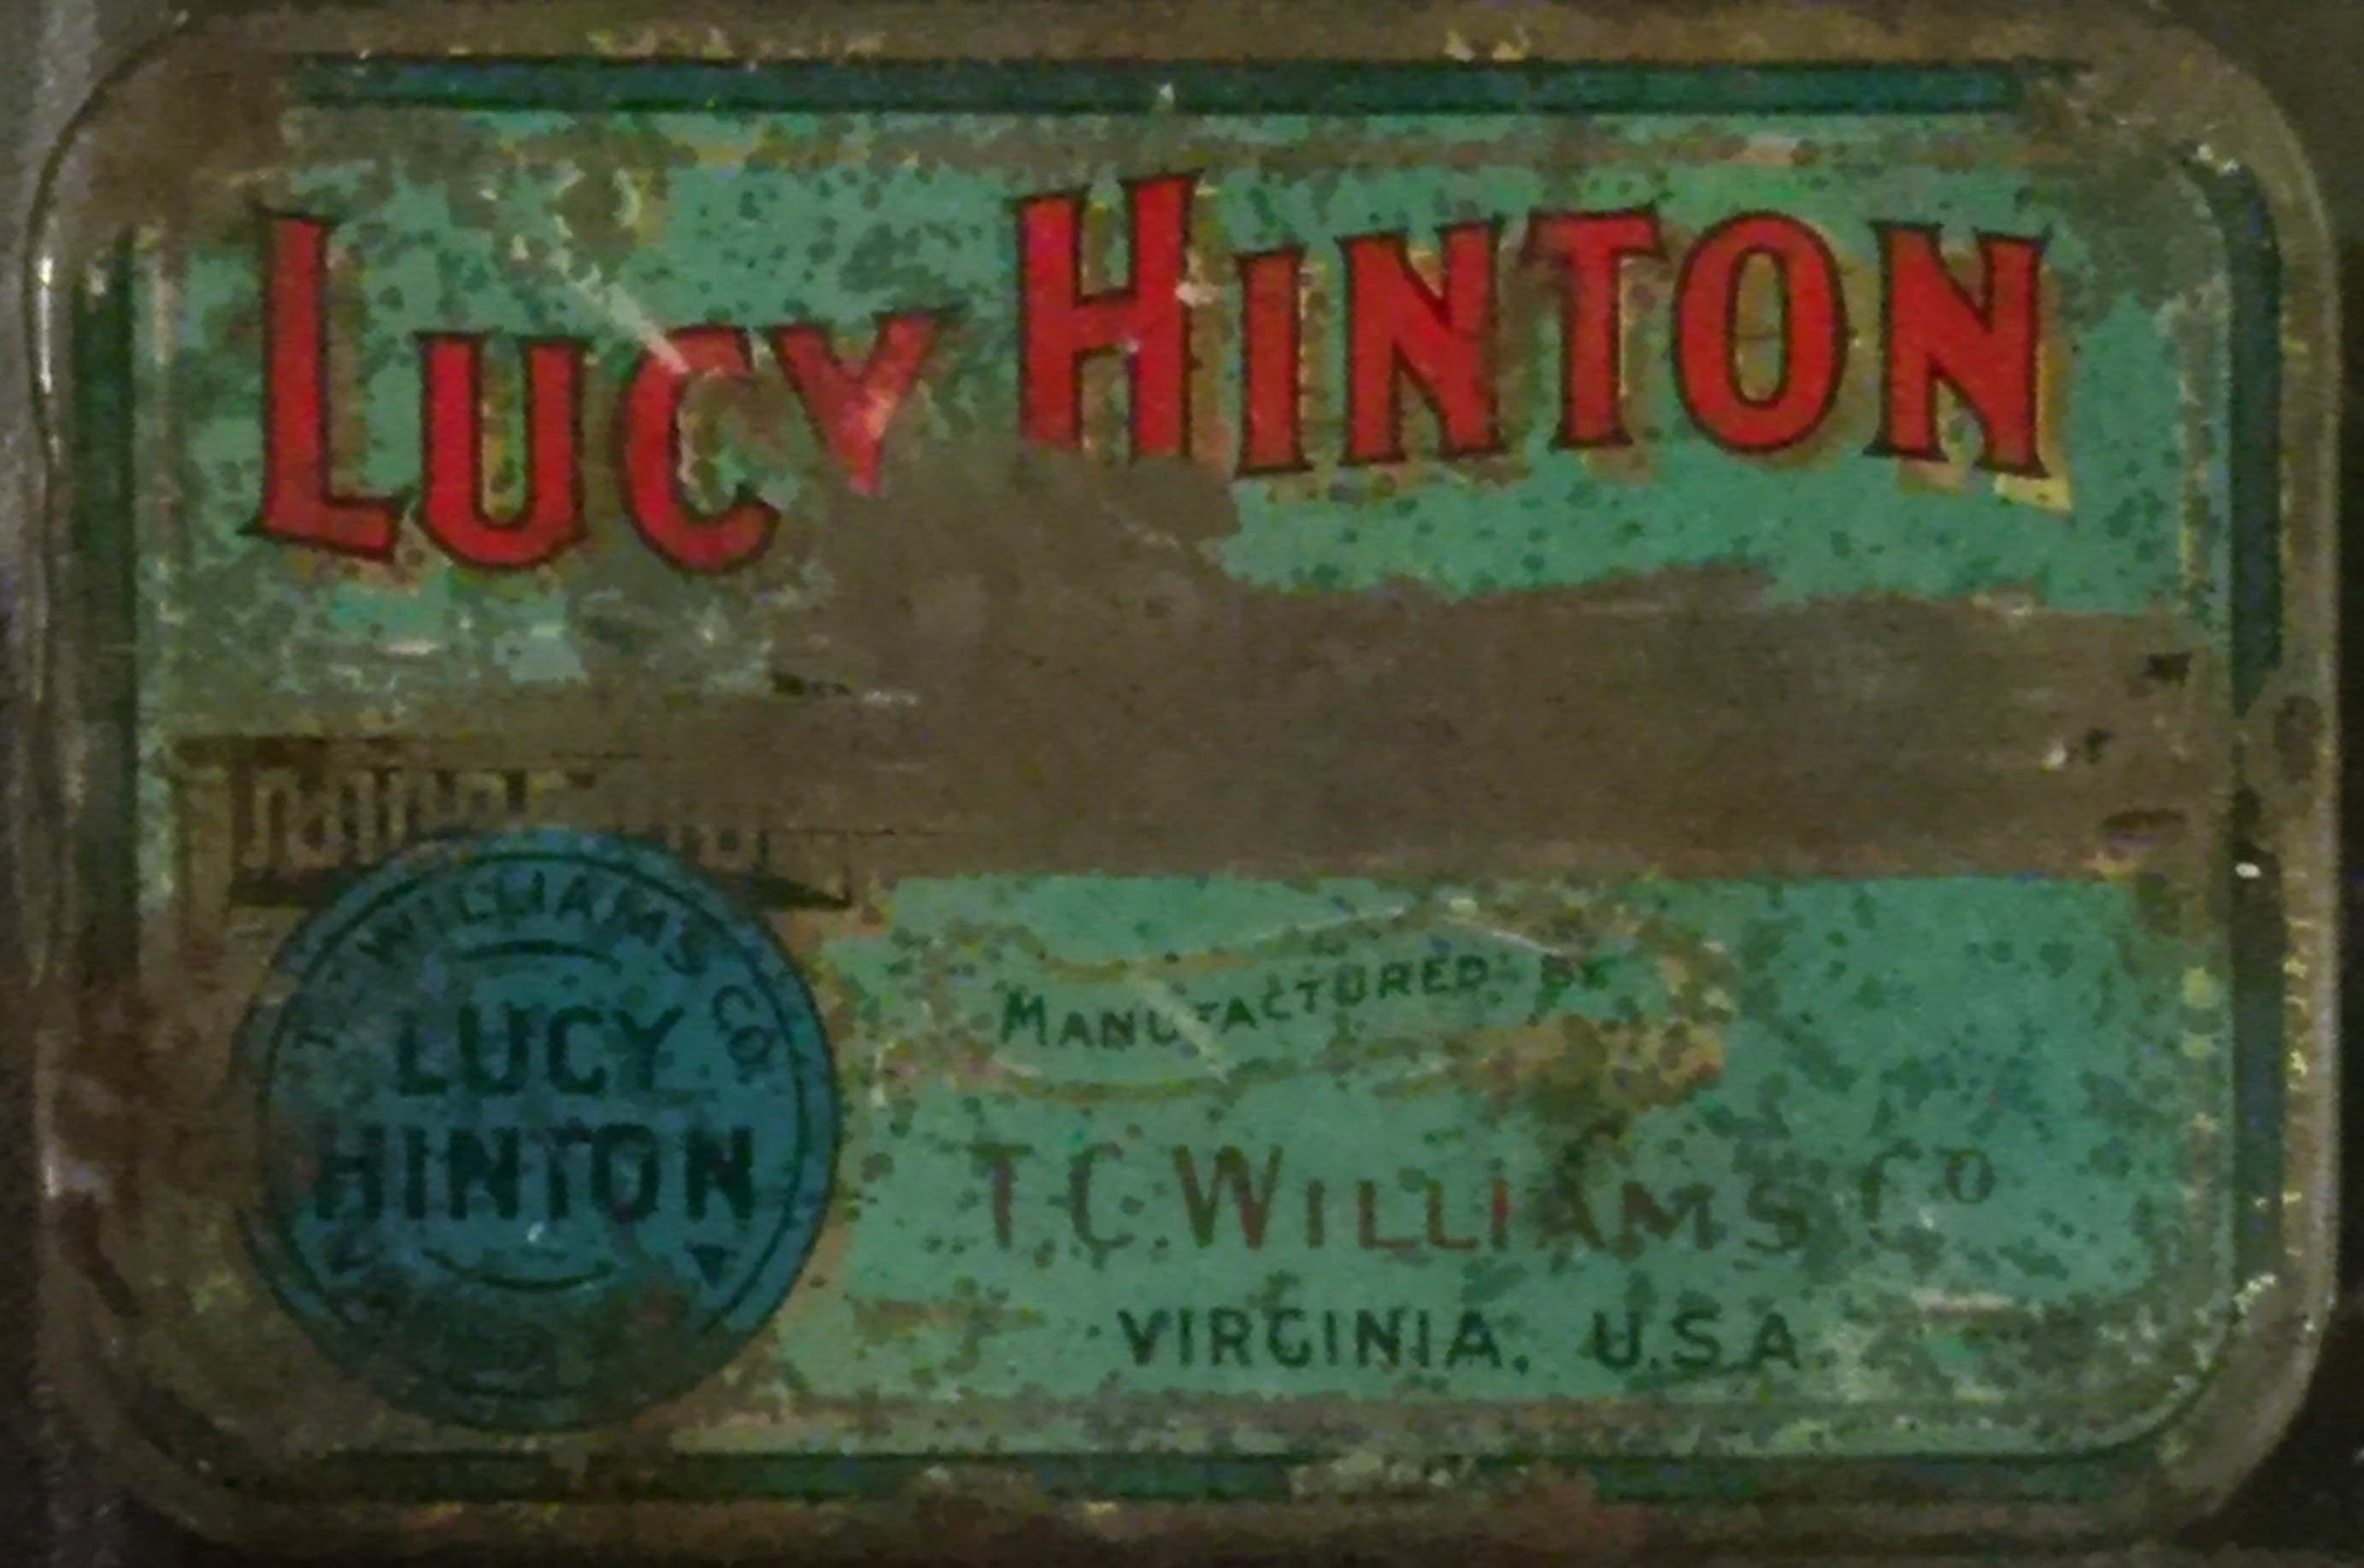 Cigarette tin belonging to Roy Victor Holloway (Gold Museum collection, 84.0762)